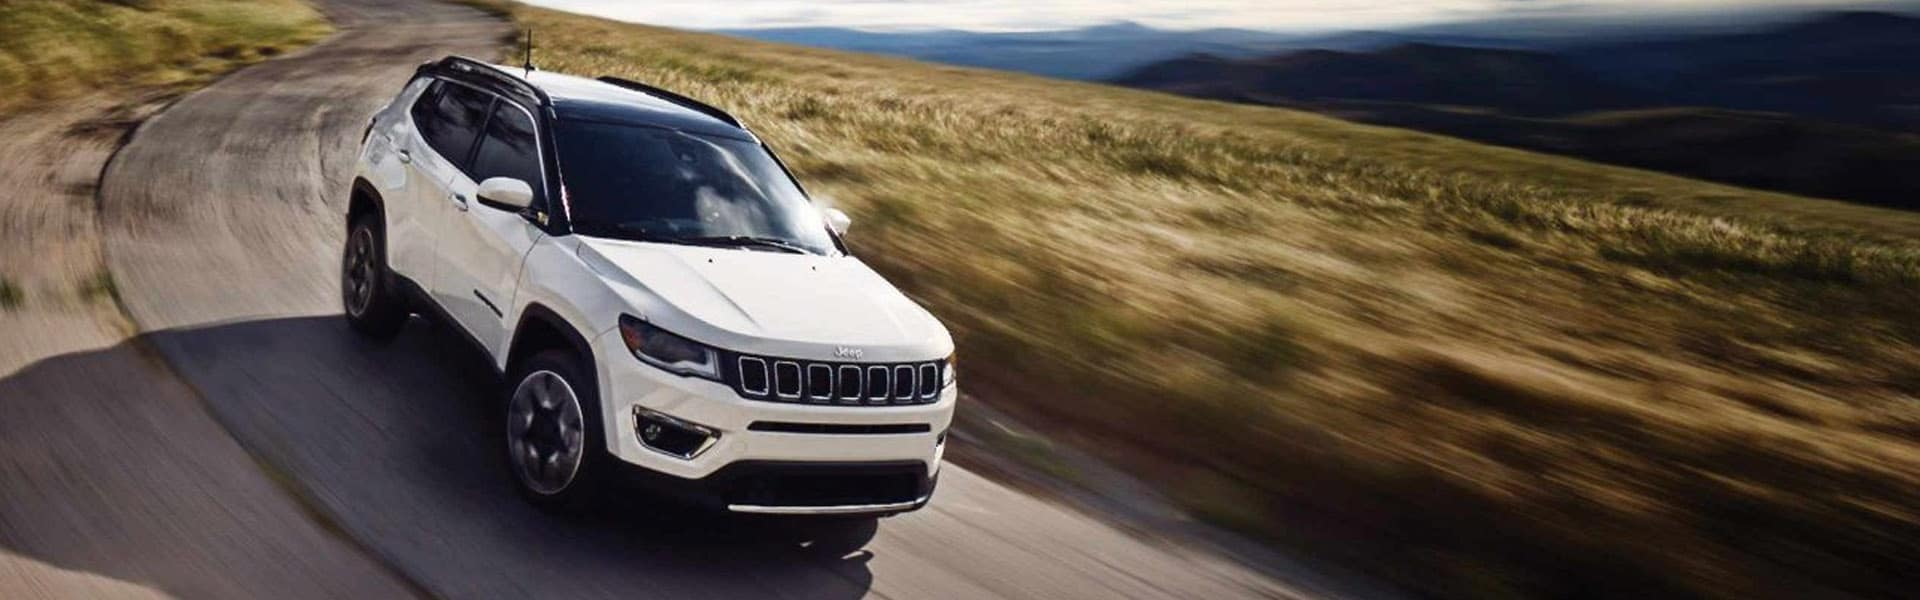 Jeep Dealership Indianapolis >> 2019 Jeep Compass Jeep Dealer Indianapolis In Eastgate Chrysler